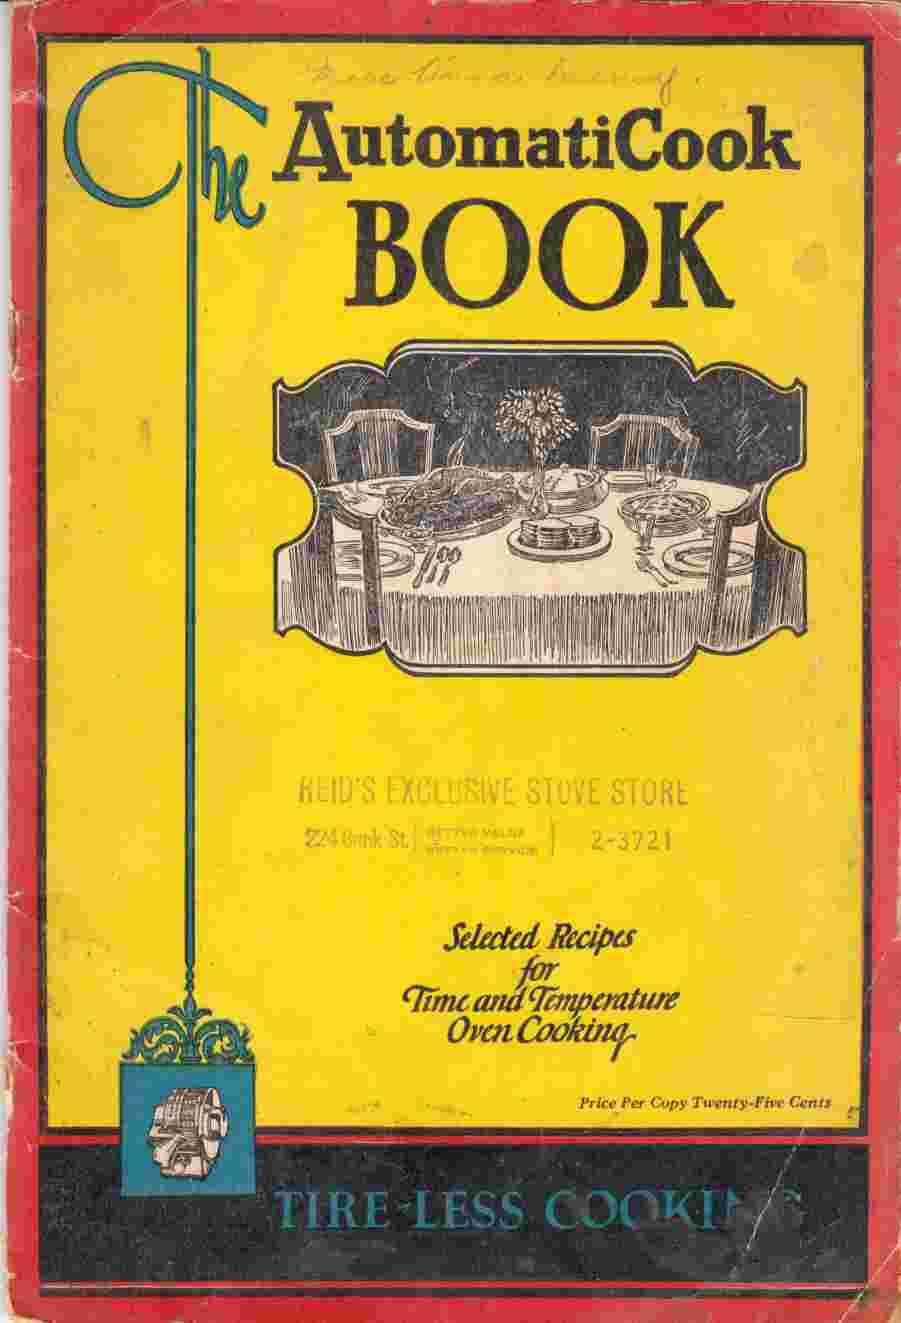 Image for The AutomatiCook Book Selected Recipes for Time and Temperature Cooking